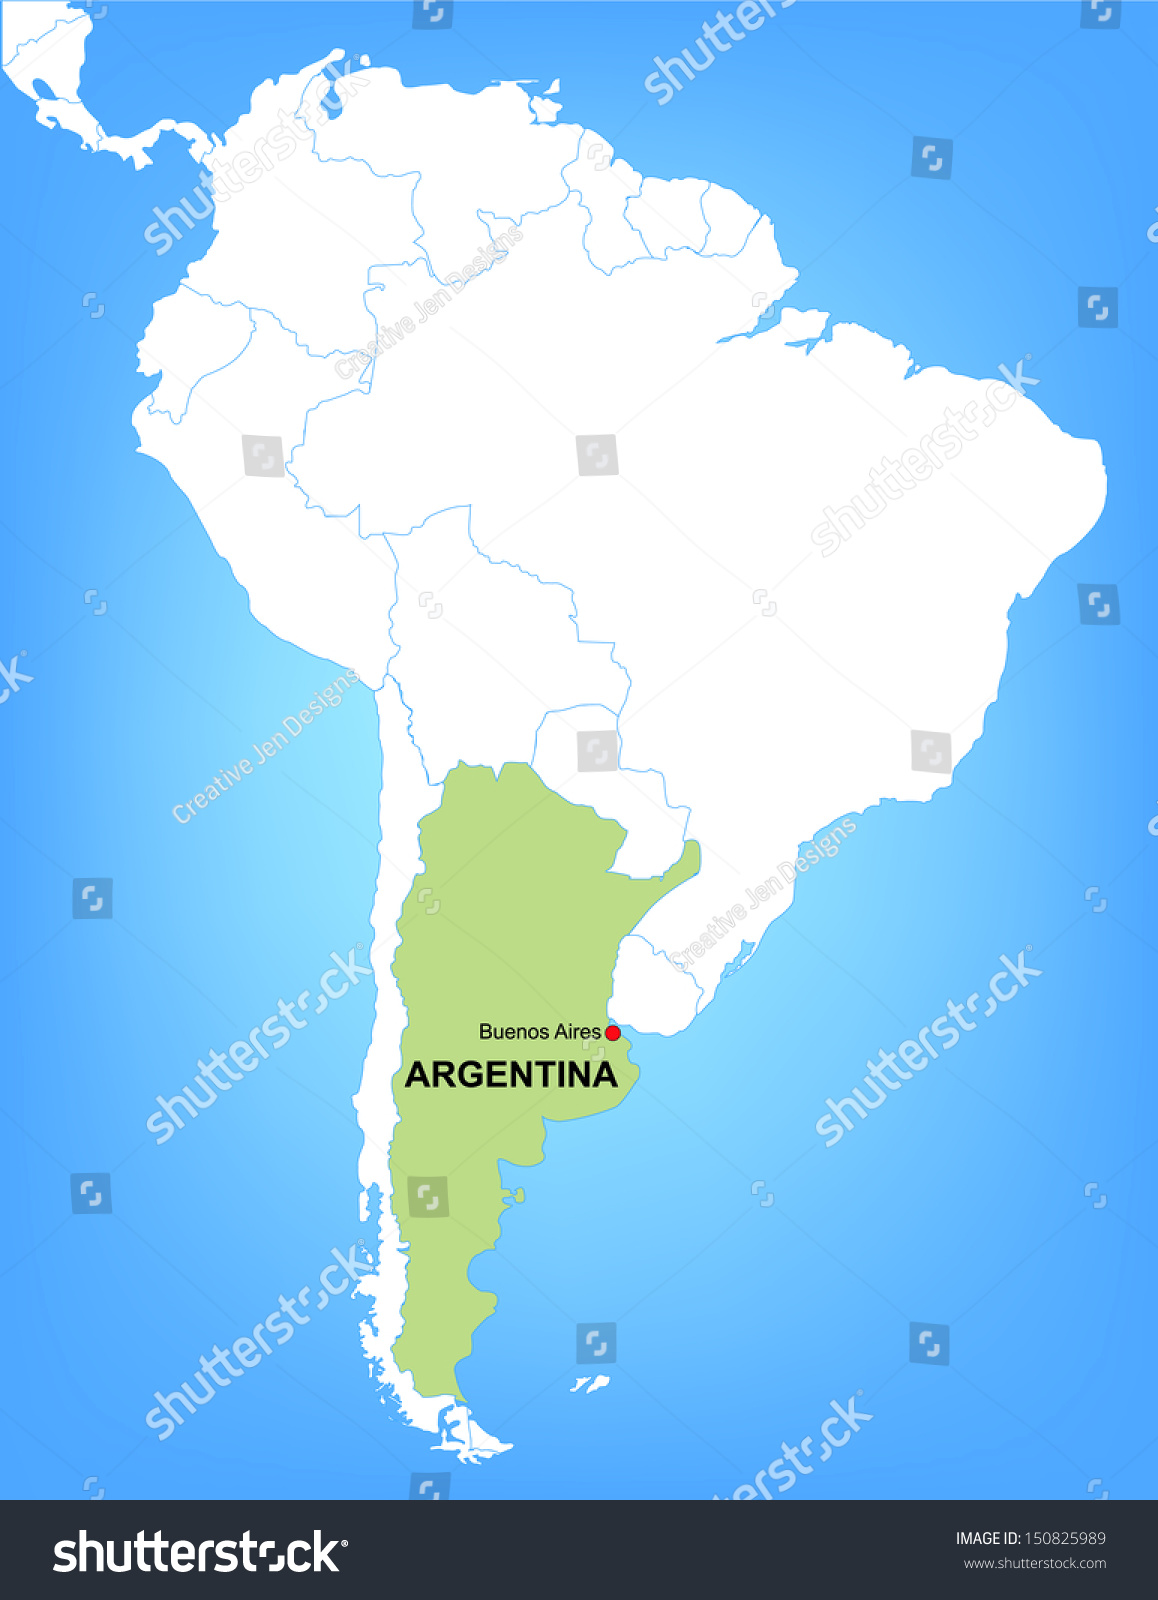 Vector Map South America Highlighting Country Stock Vector - South america argentina map